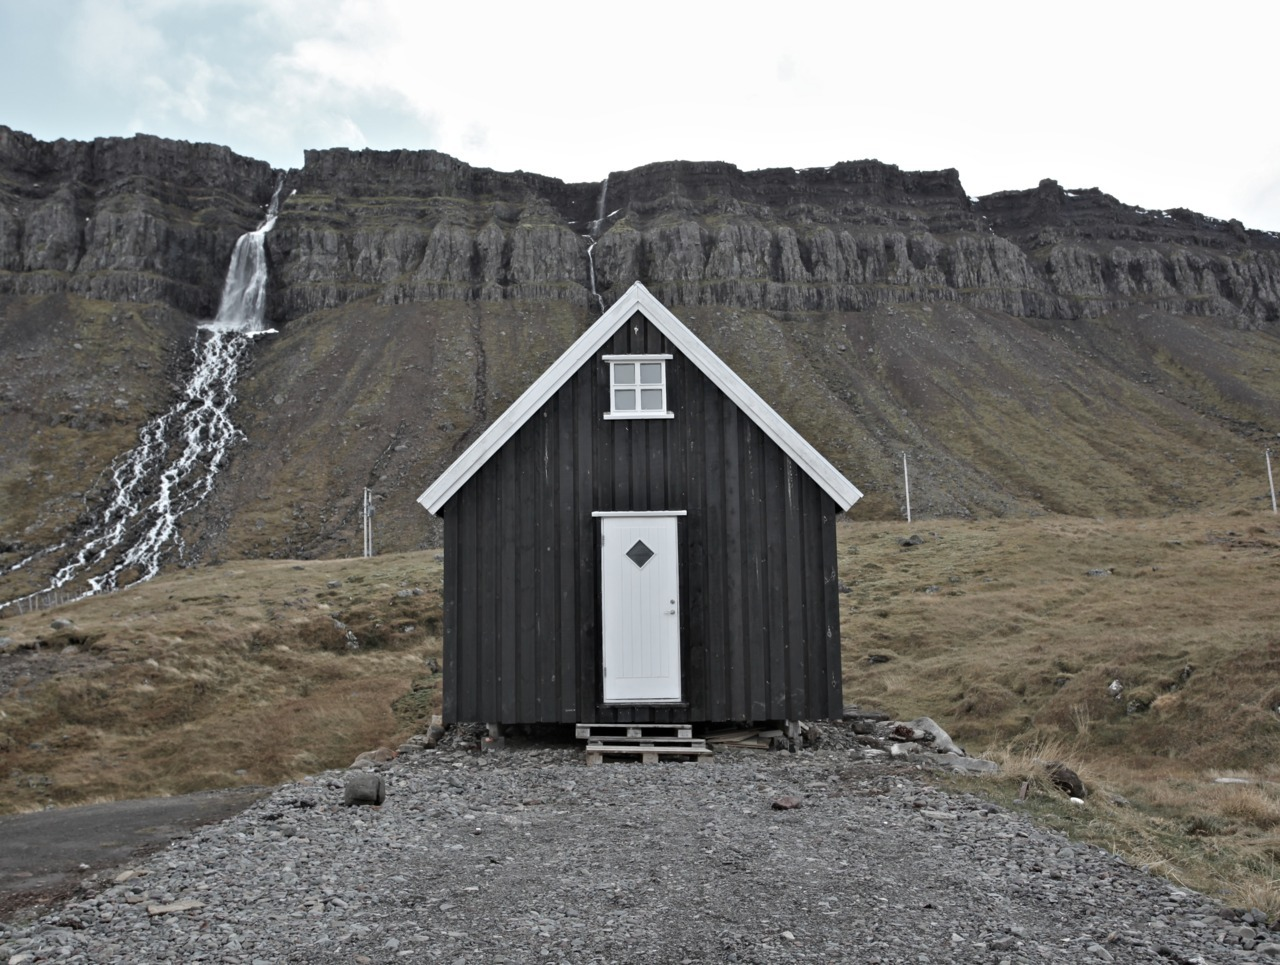 cabinporn:  Cabin in Djúpavík, Iceland. Submitted by Anthony Bacigalupo.